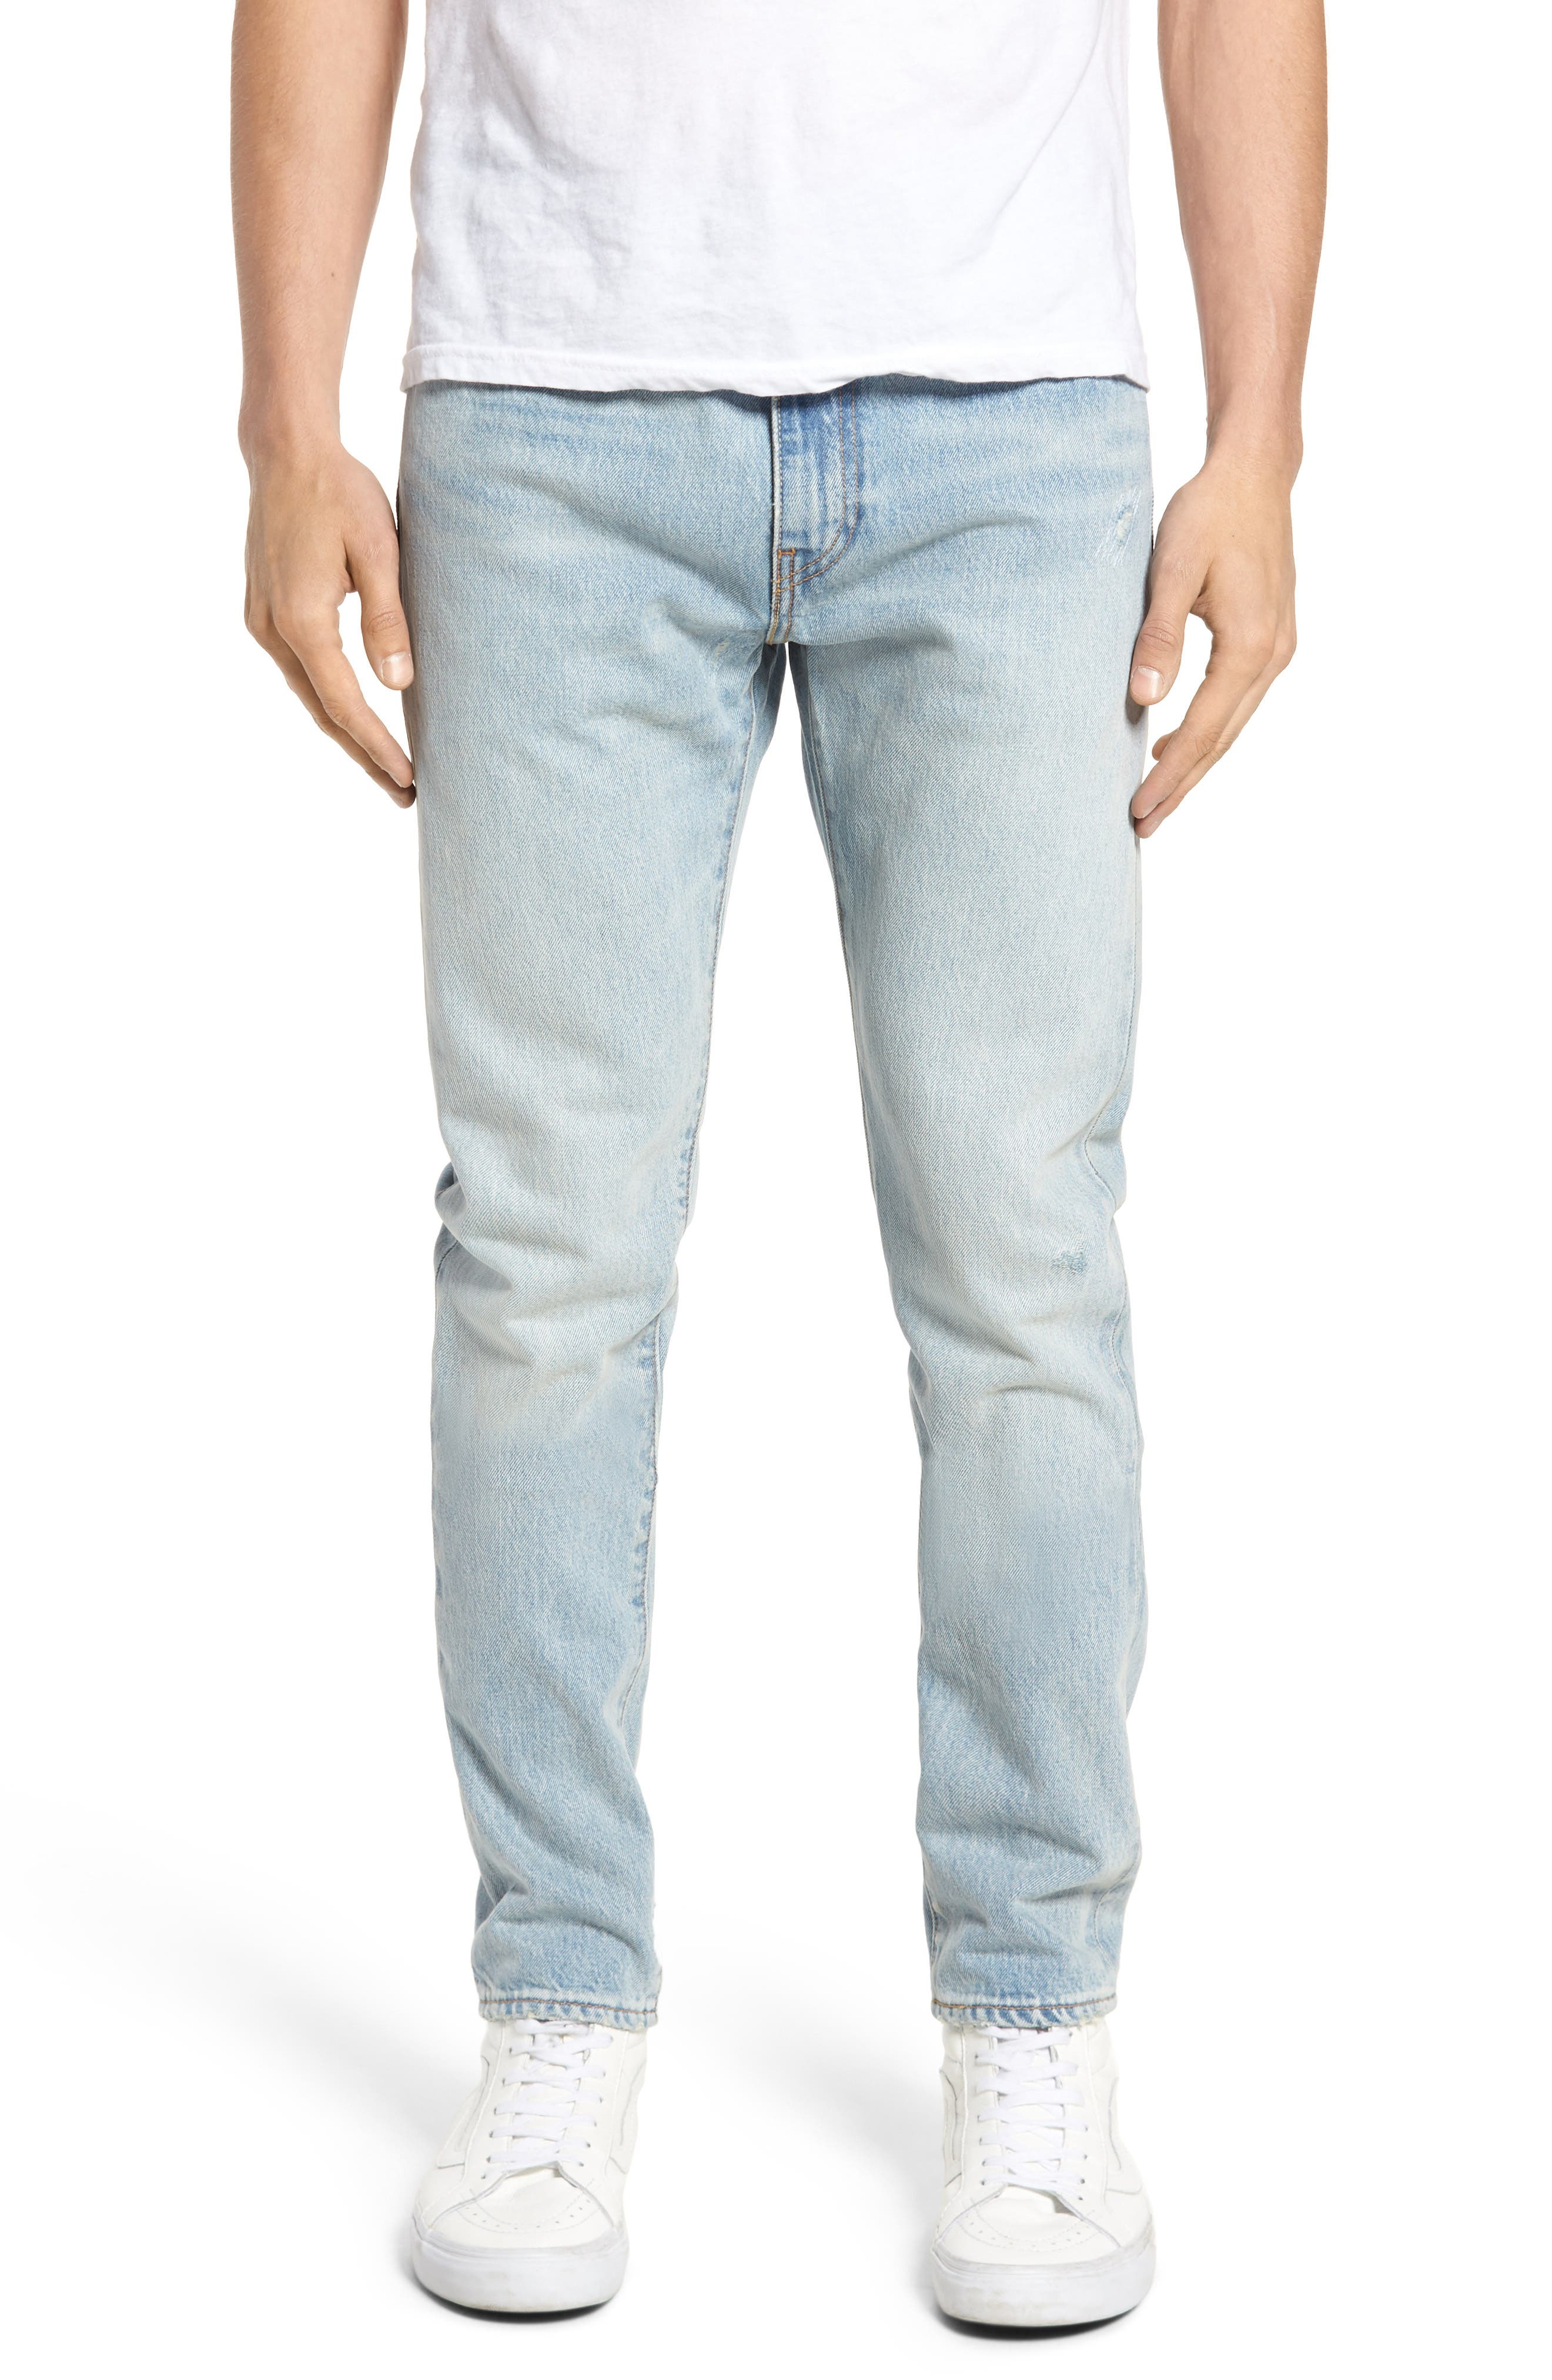 512<sup>™</sup> Skinny Fit Crop Jeans,                         Main,                         color, Medium Blue Surf Ave